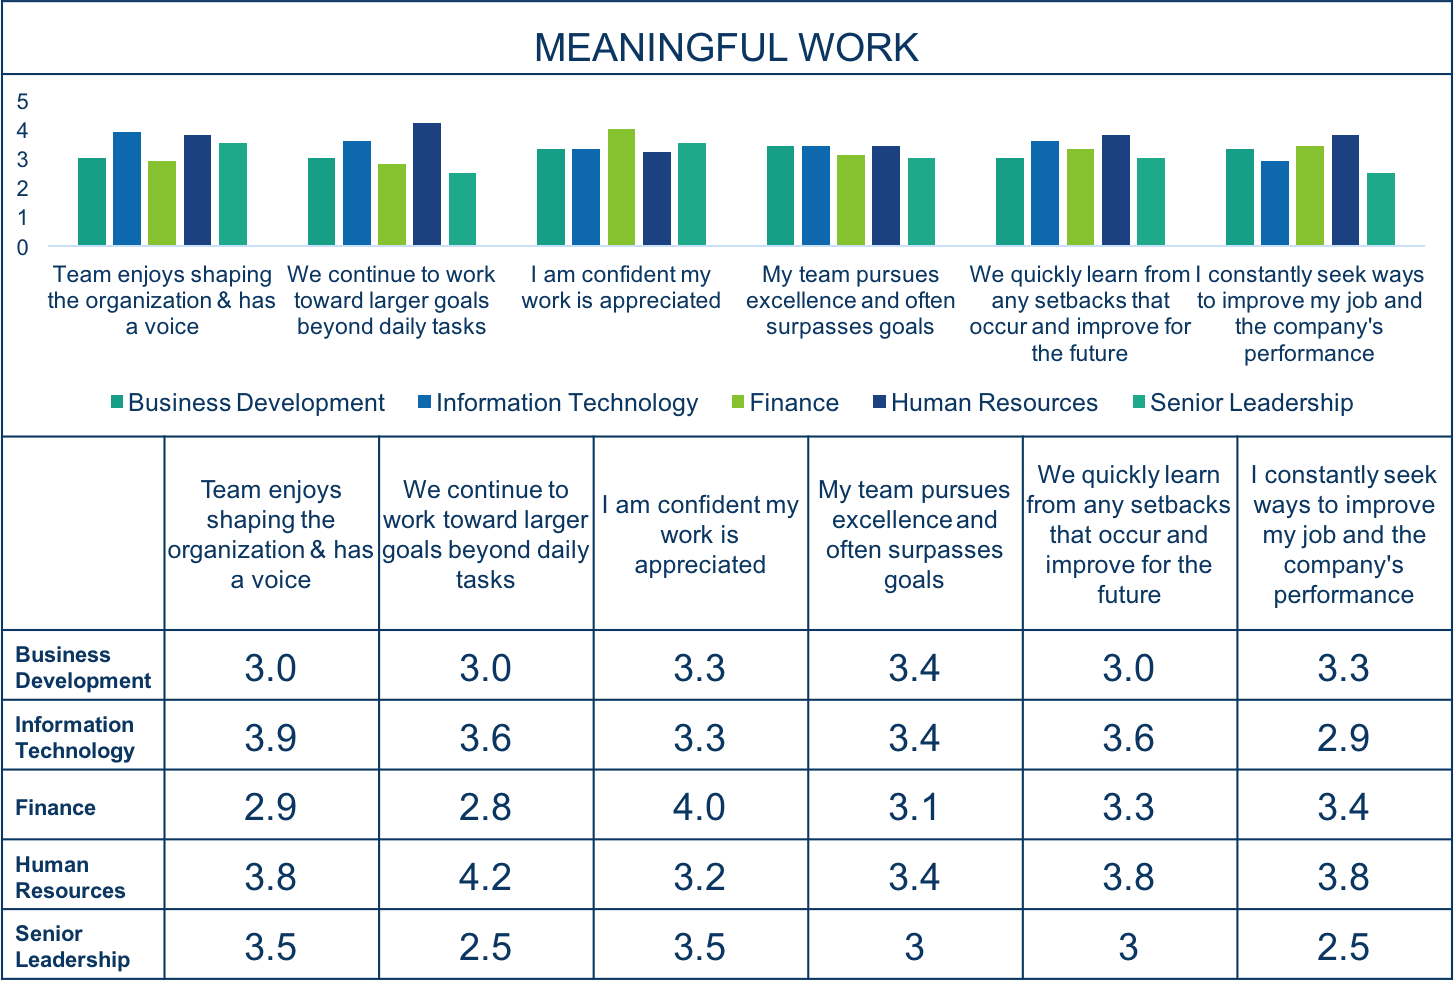 Employee Engagement Survey Results   Meaningful Work